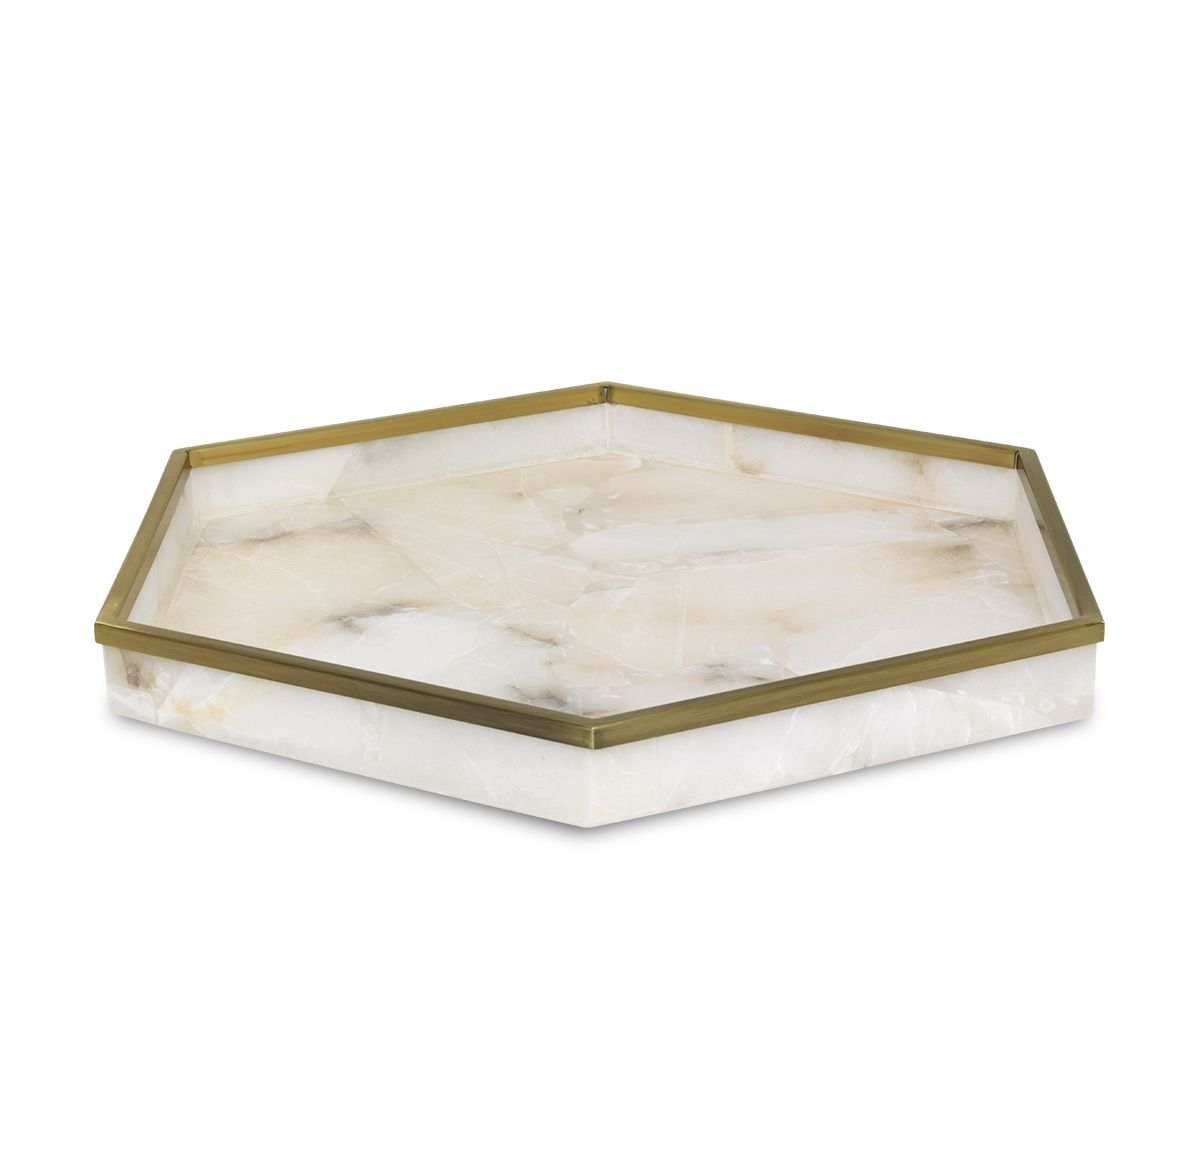 Bandejas Decorativas Online Alabaster Tray Br Available Online And In Stores Decorațiuni